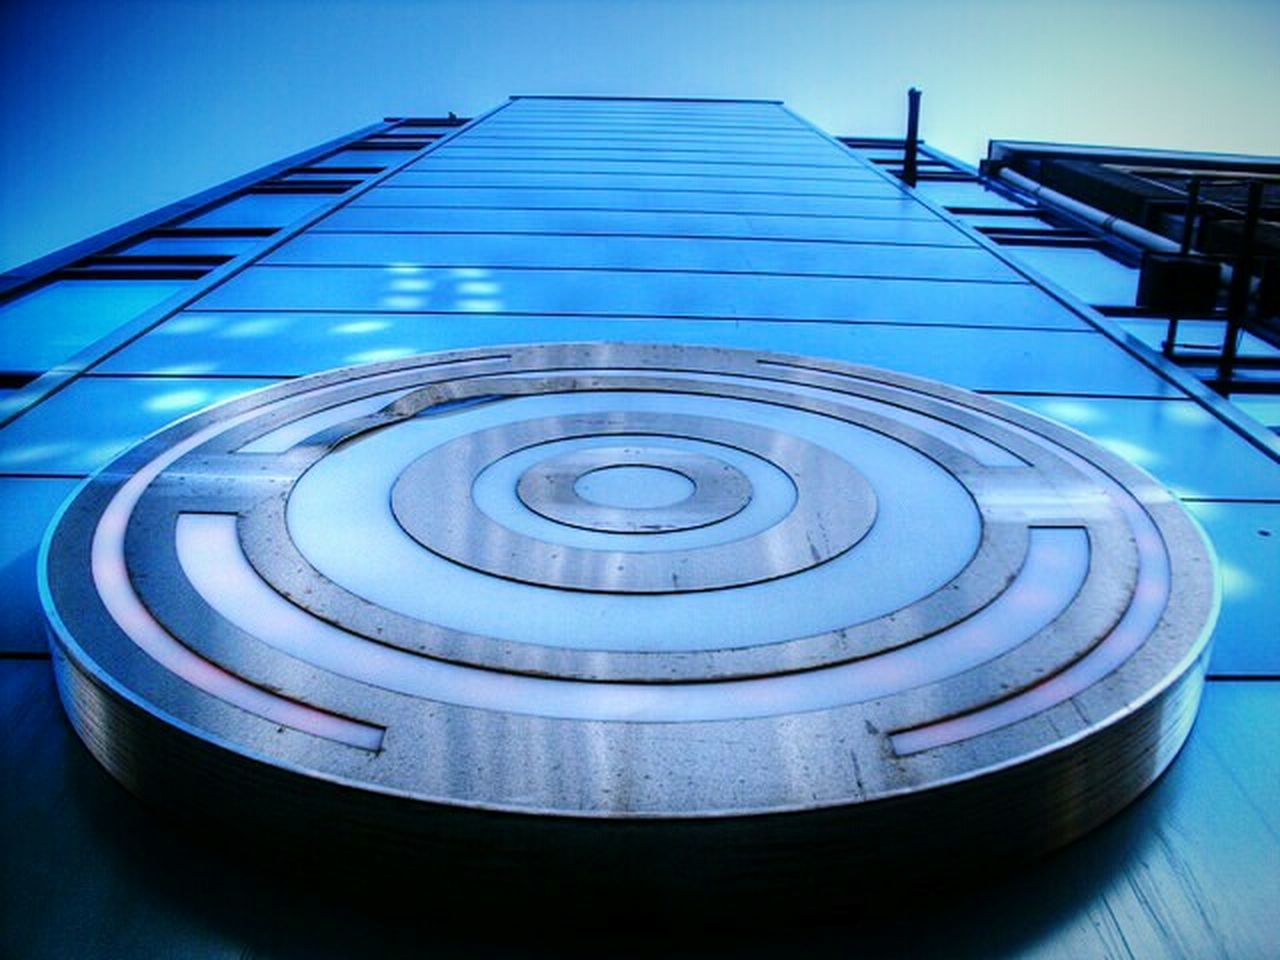 blue, no people, architecture, built structure, curve, concentric, day, outdoors, sky, close-up